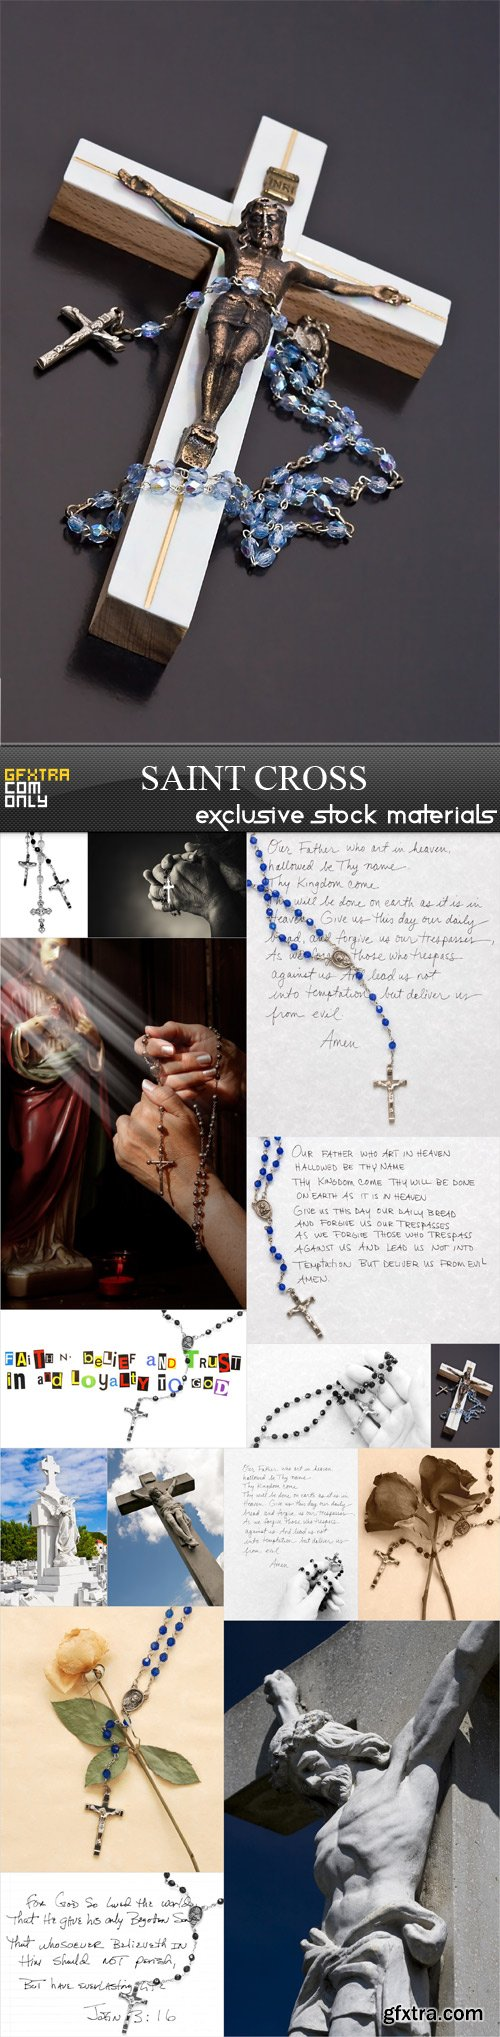 Saint cross - 15 JPRGs